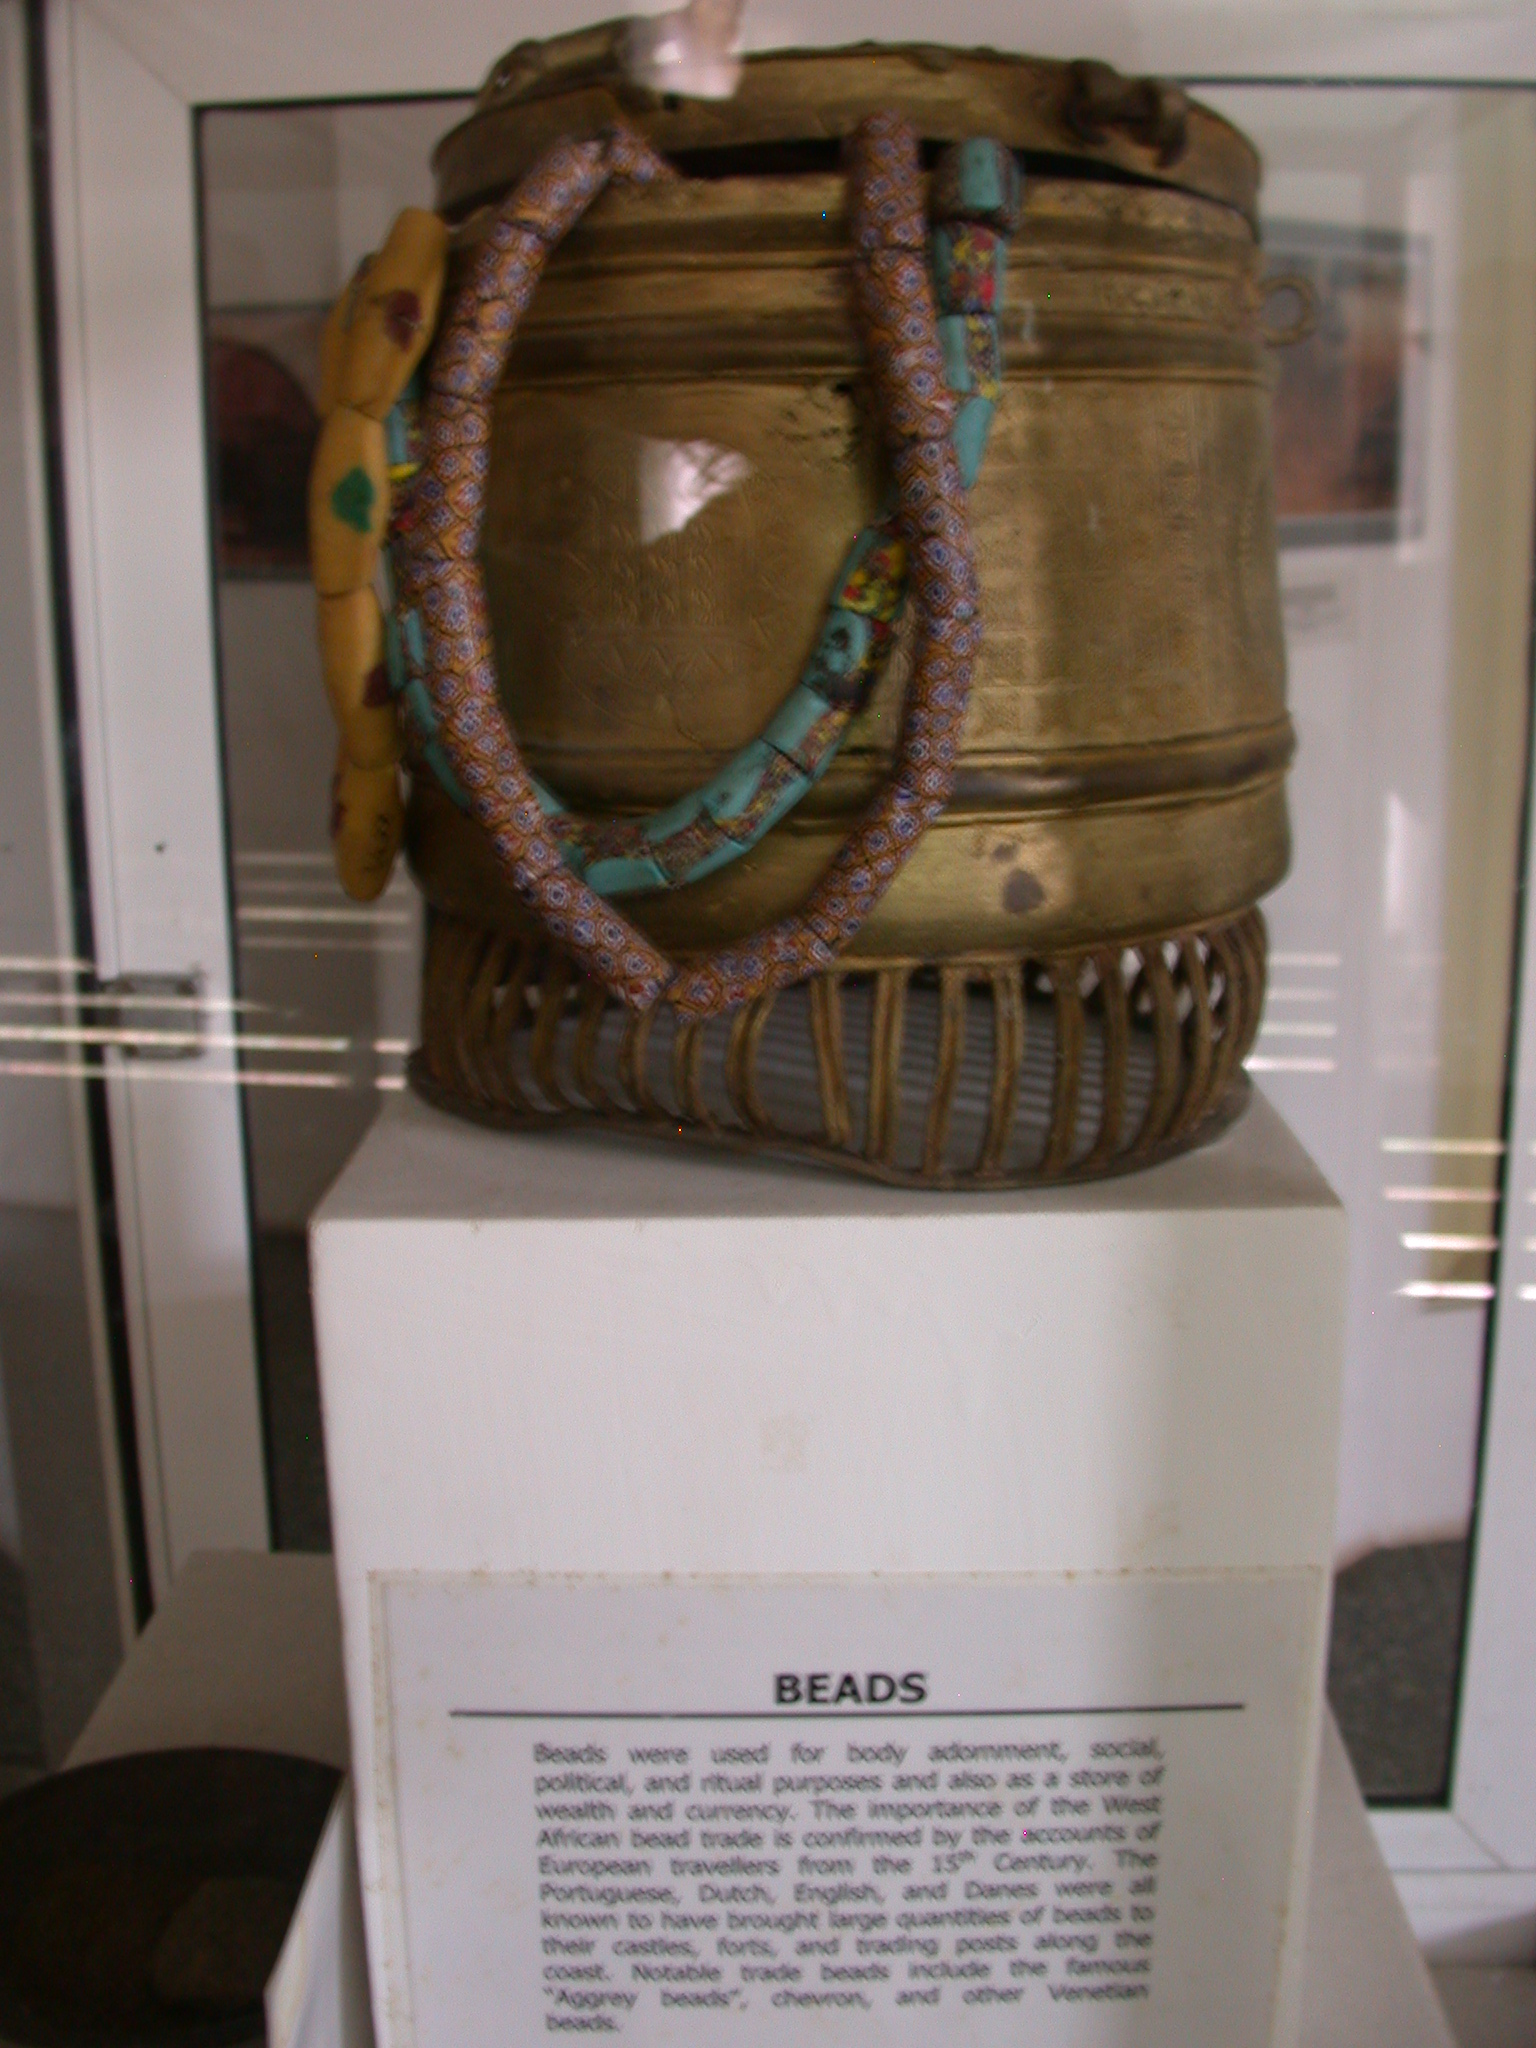 Beads and Description, National Museum, Accra, Ghana